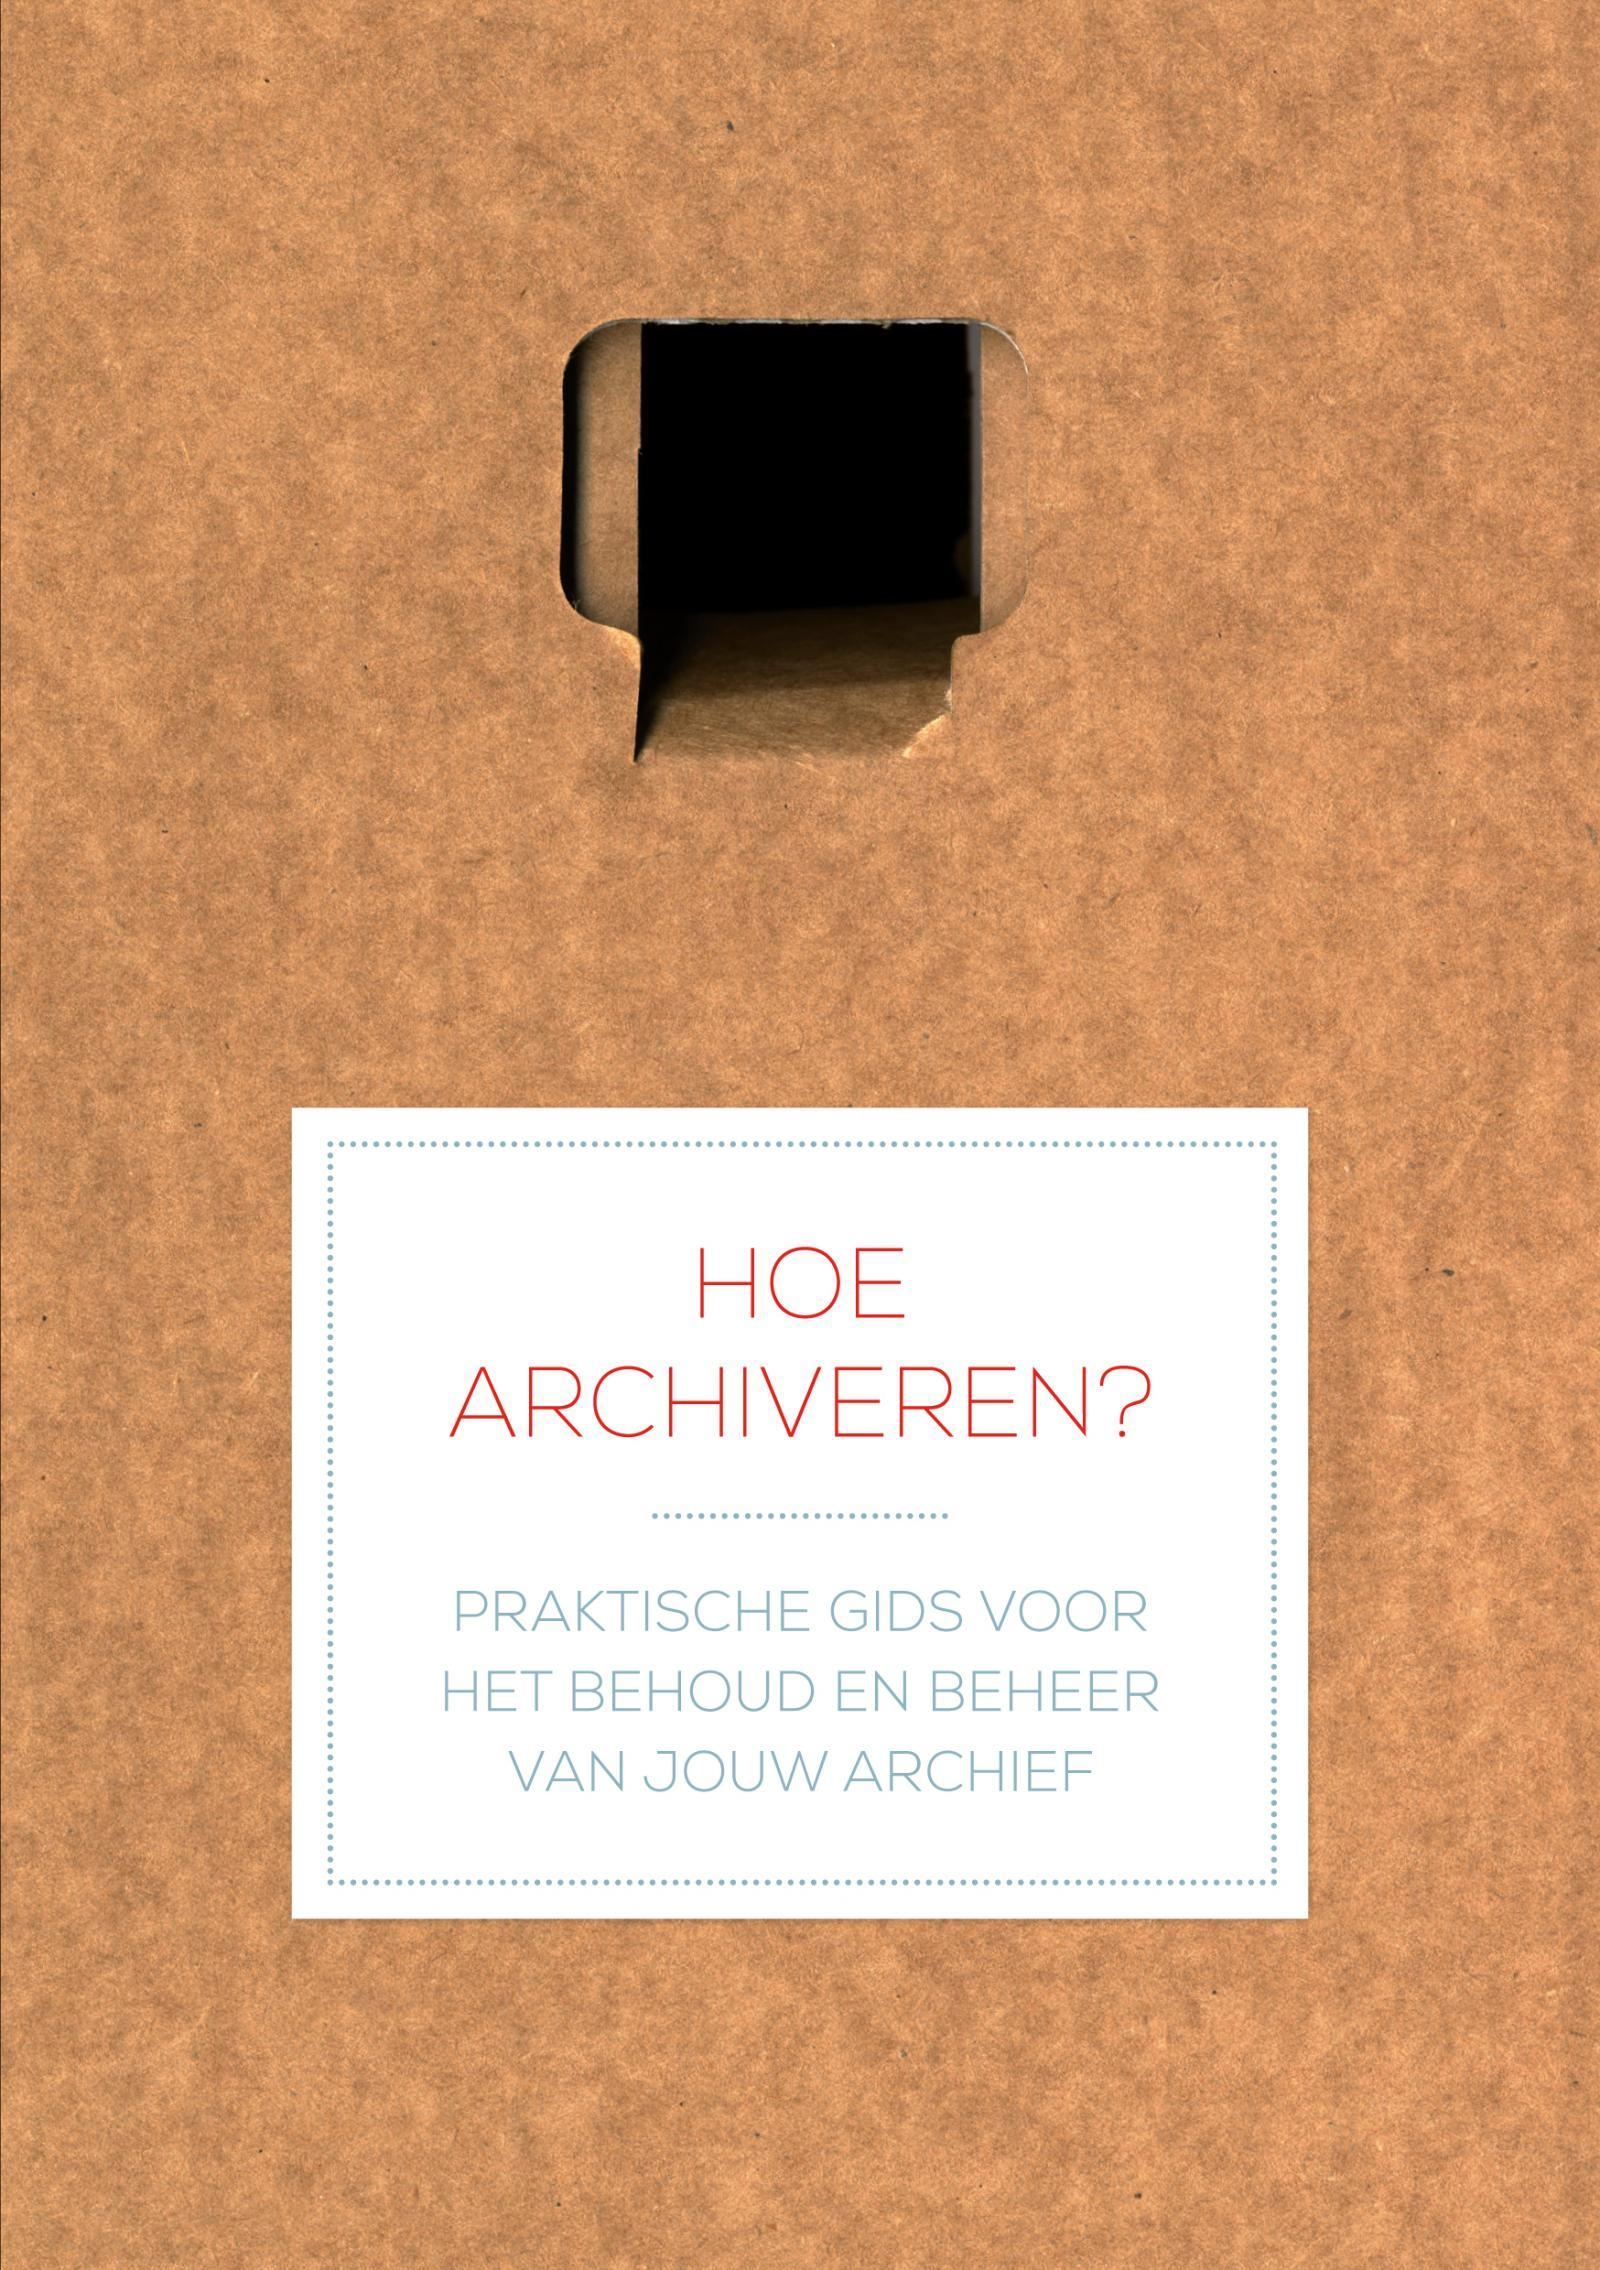 Brochure 'Hoe Archiveren?'